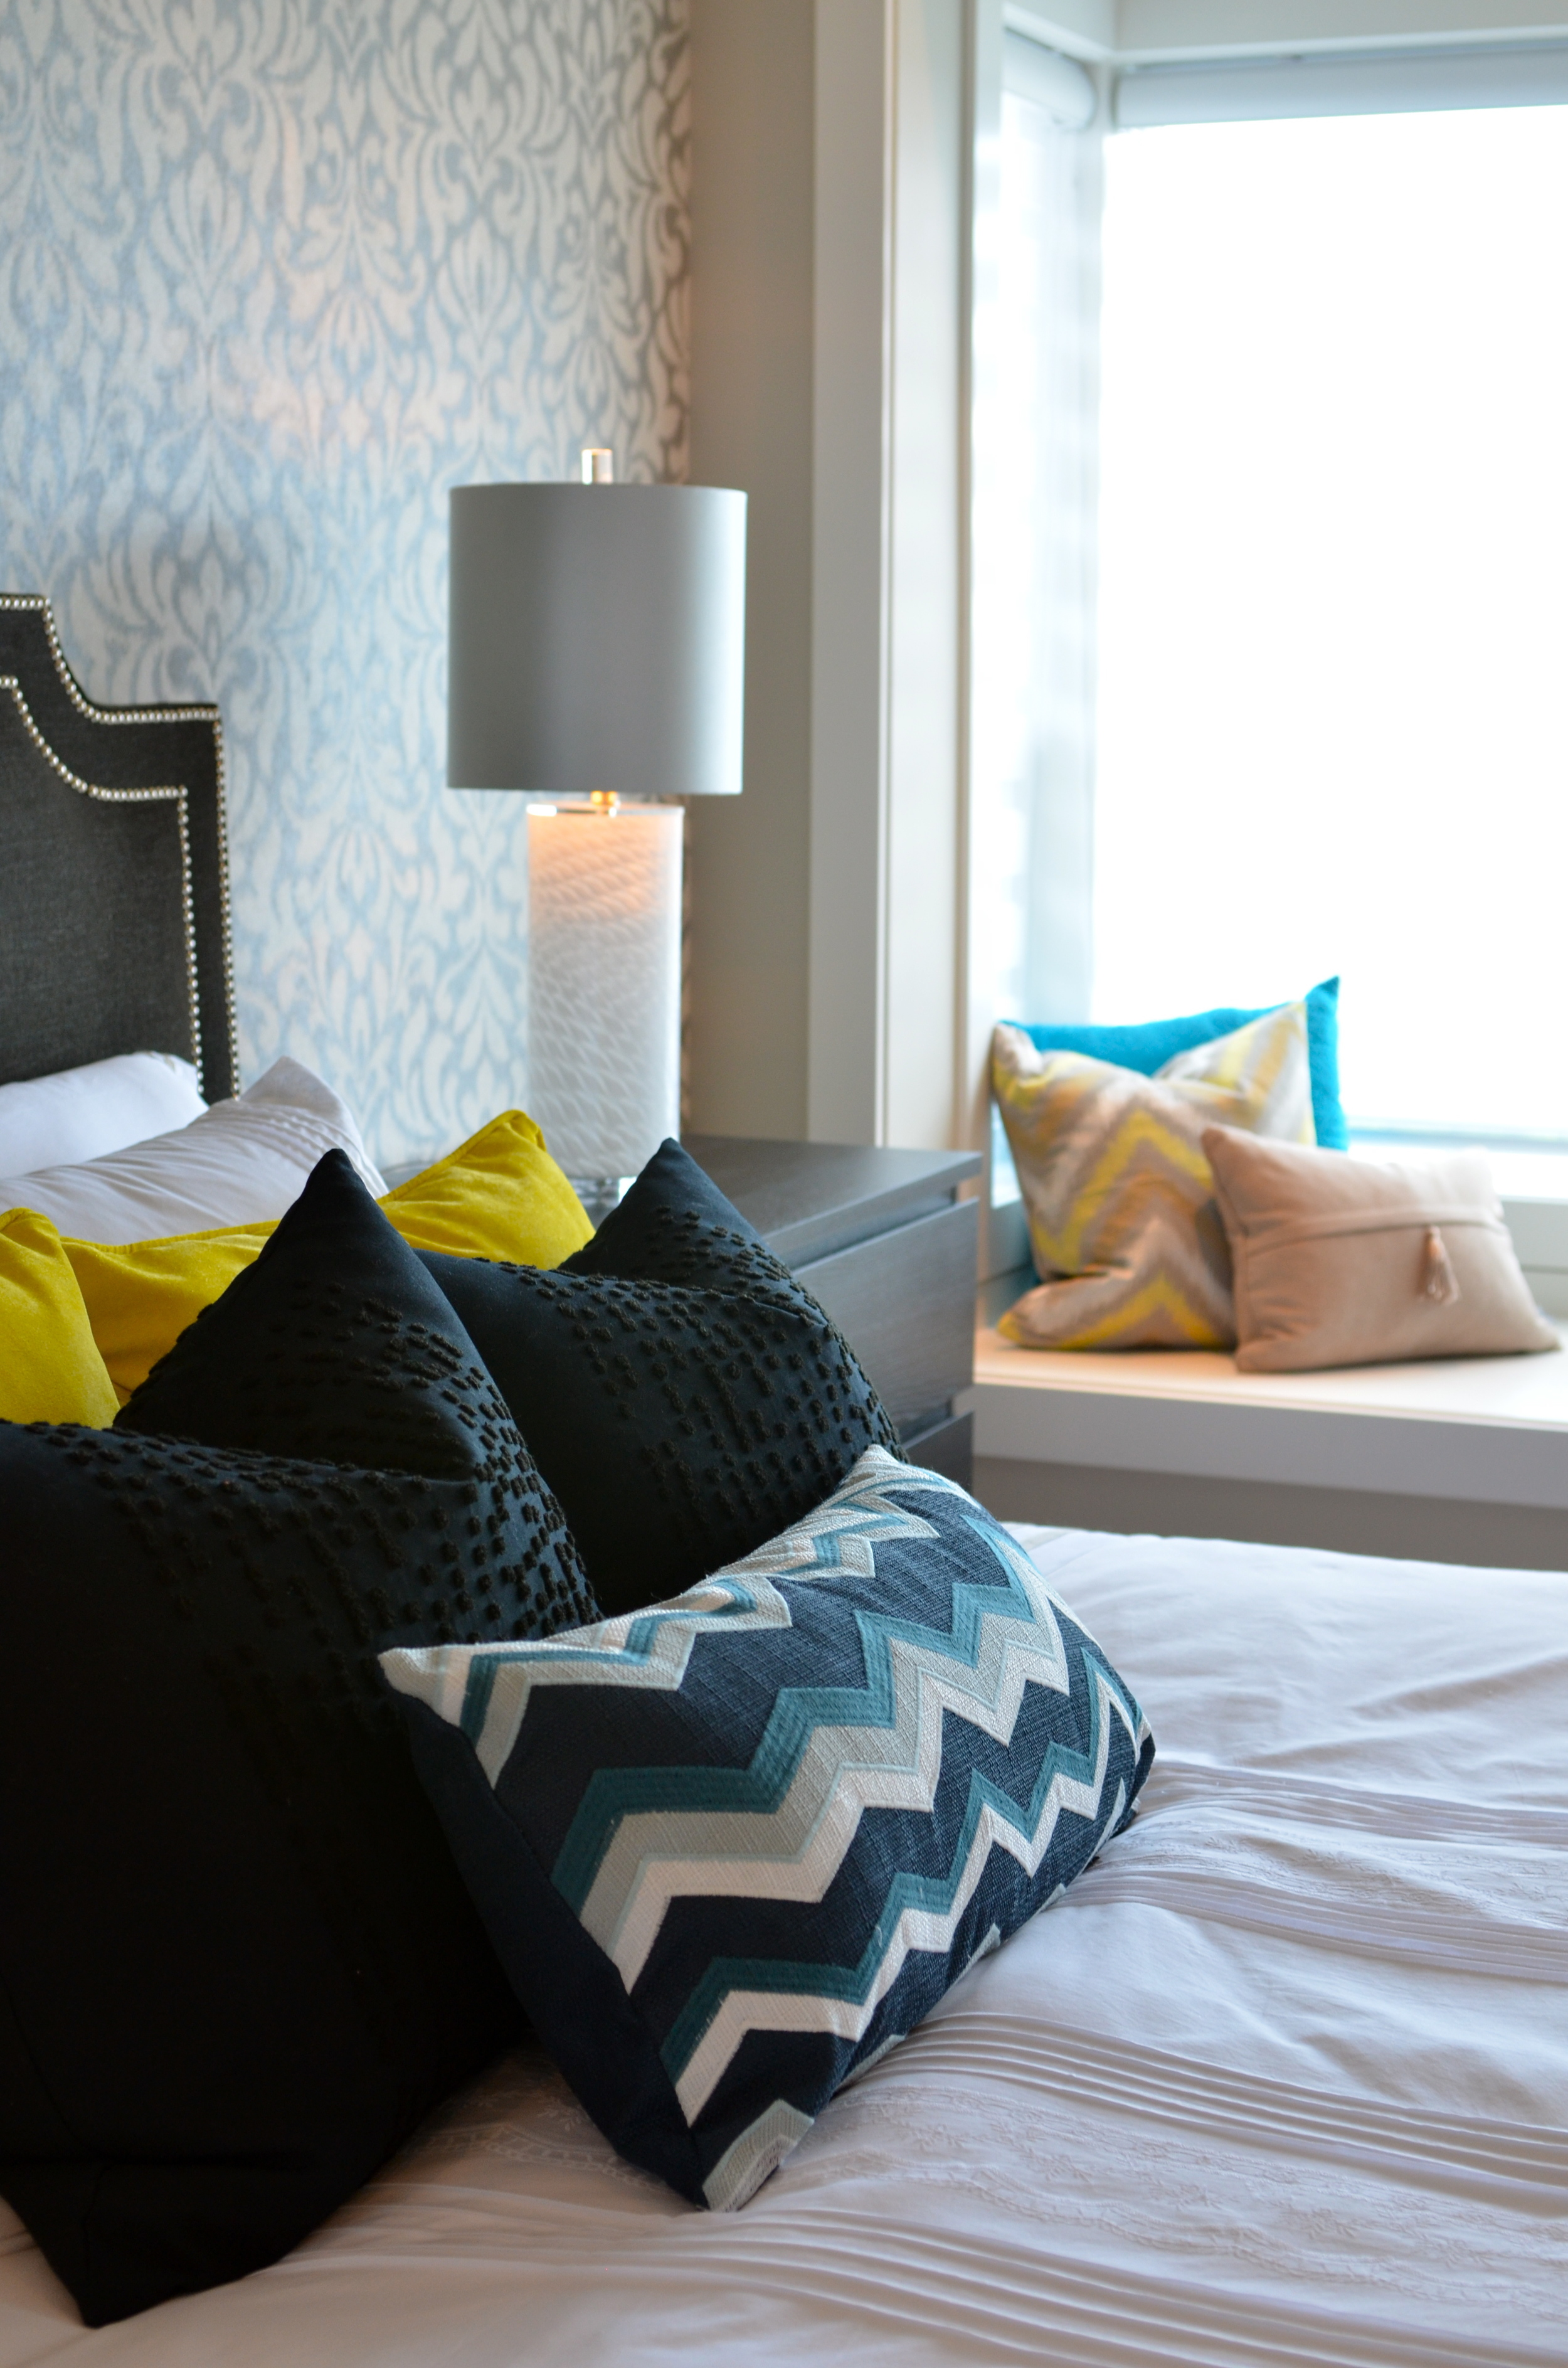 Bedrooms by interior designers in vancouver